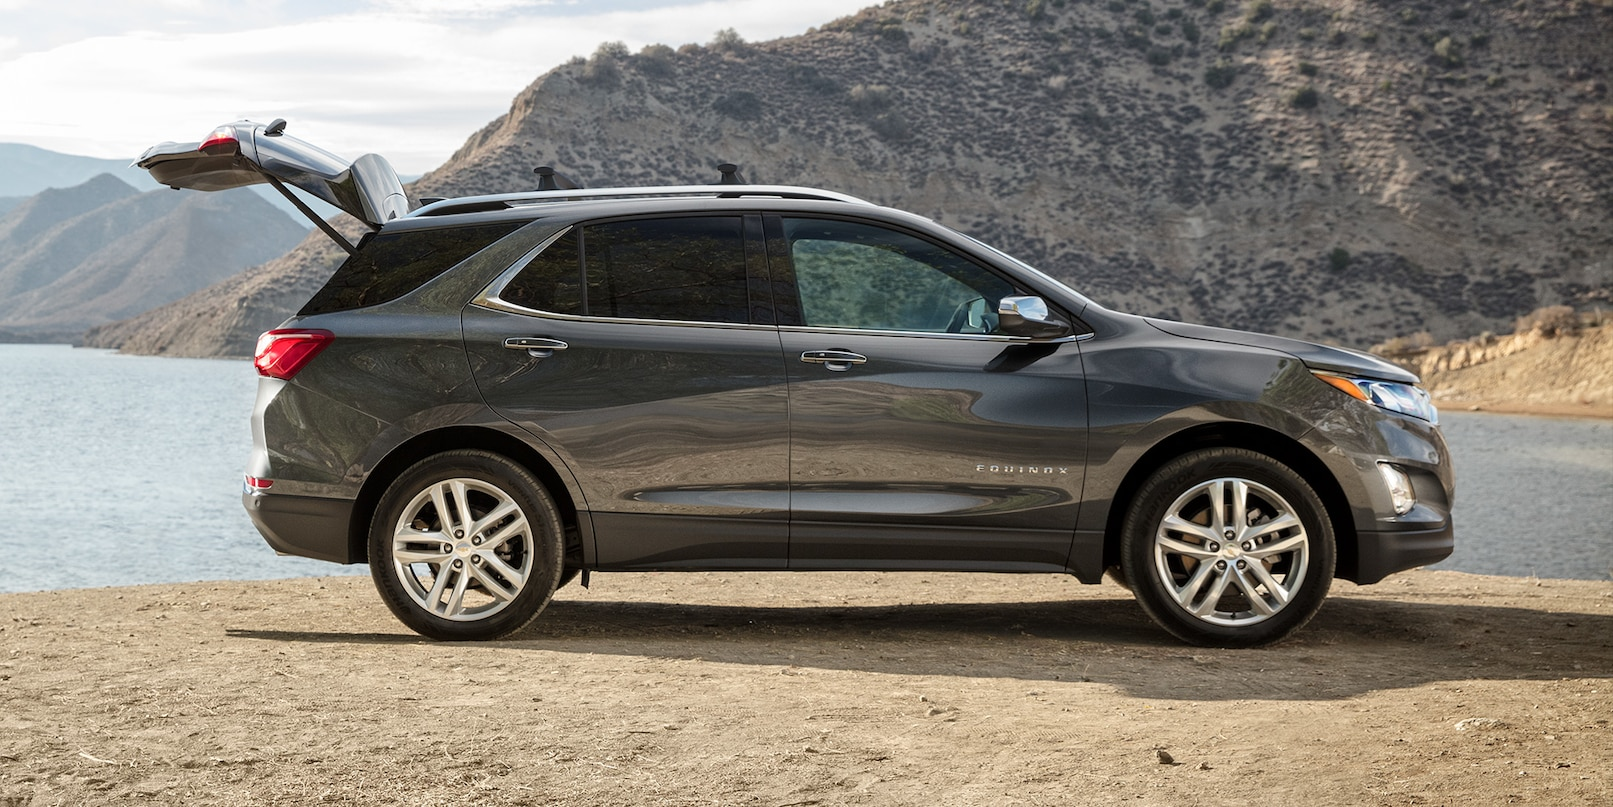 2019 Chevrolet Equinox For Sale In Jackson Mi Art Moehn Auto Group